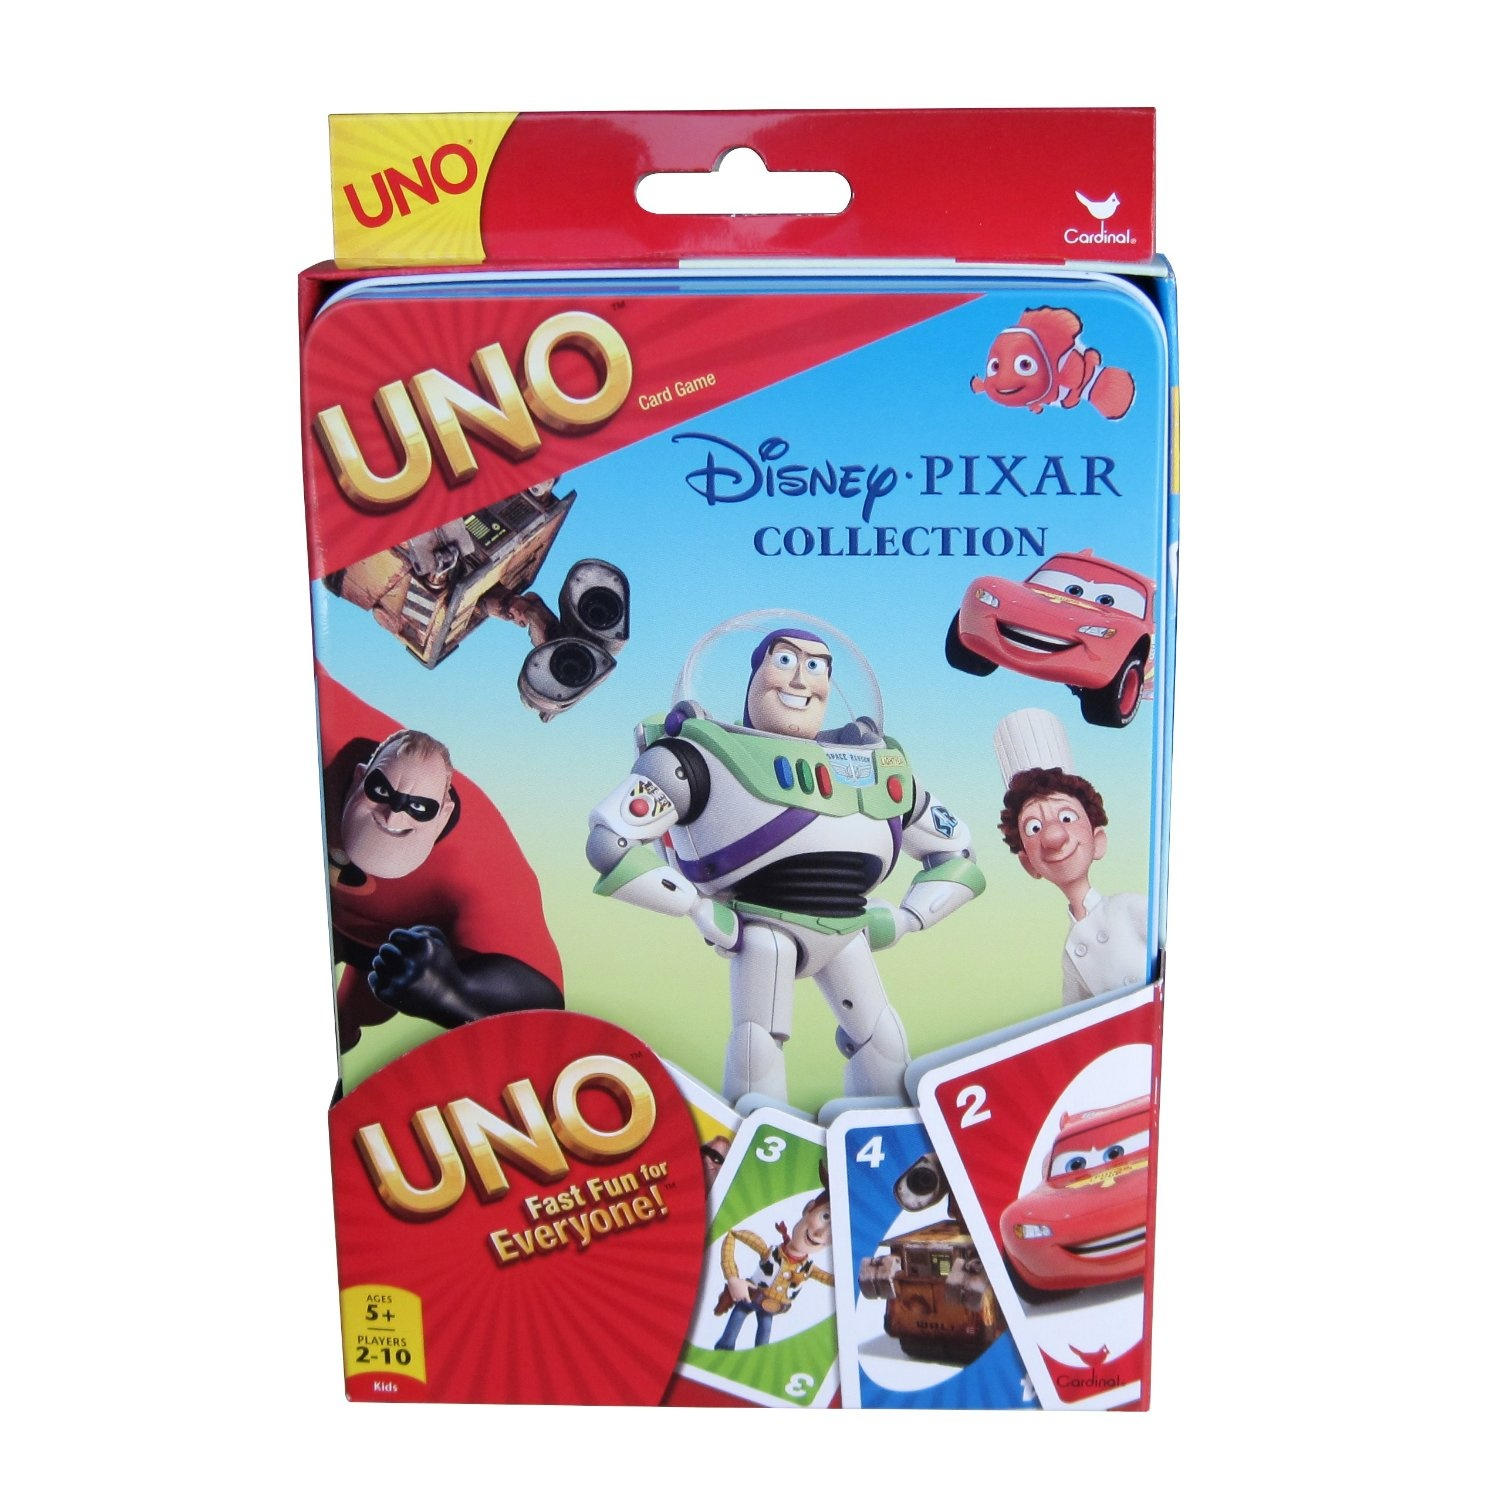 Pixar-Uno-Card-Game-Tin-Shipping-Included